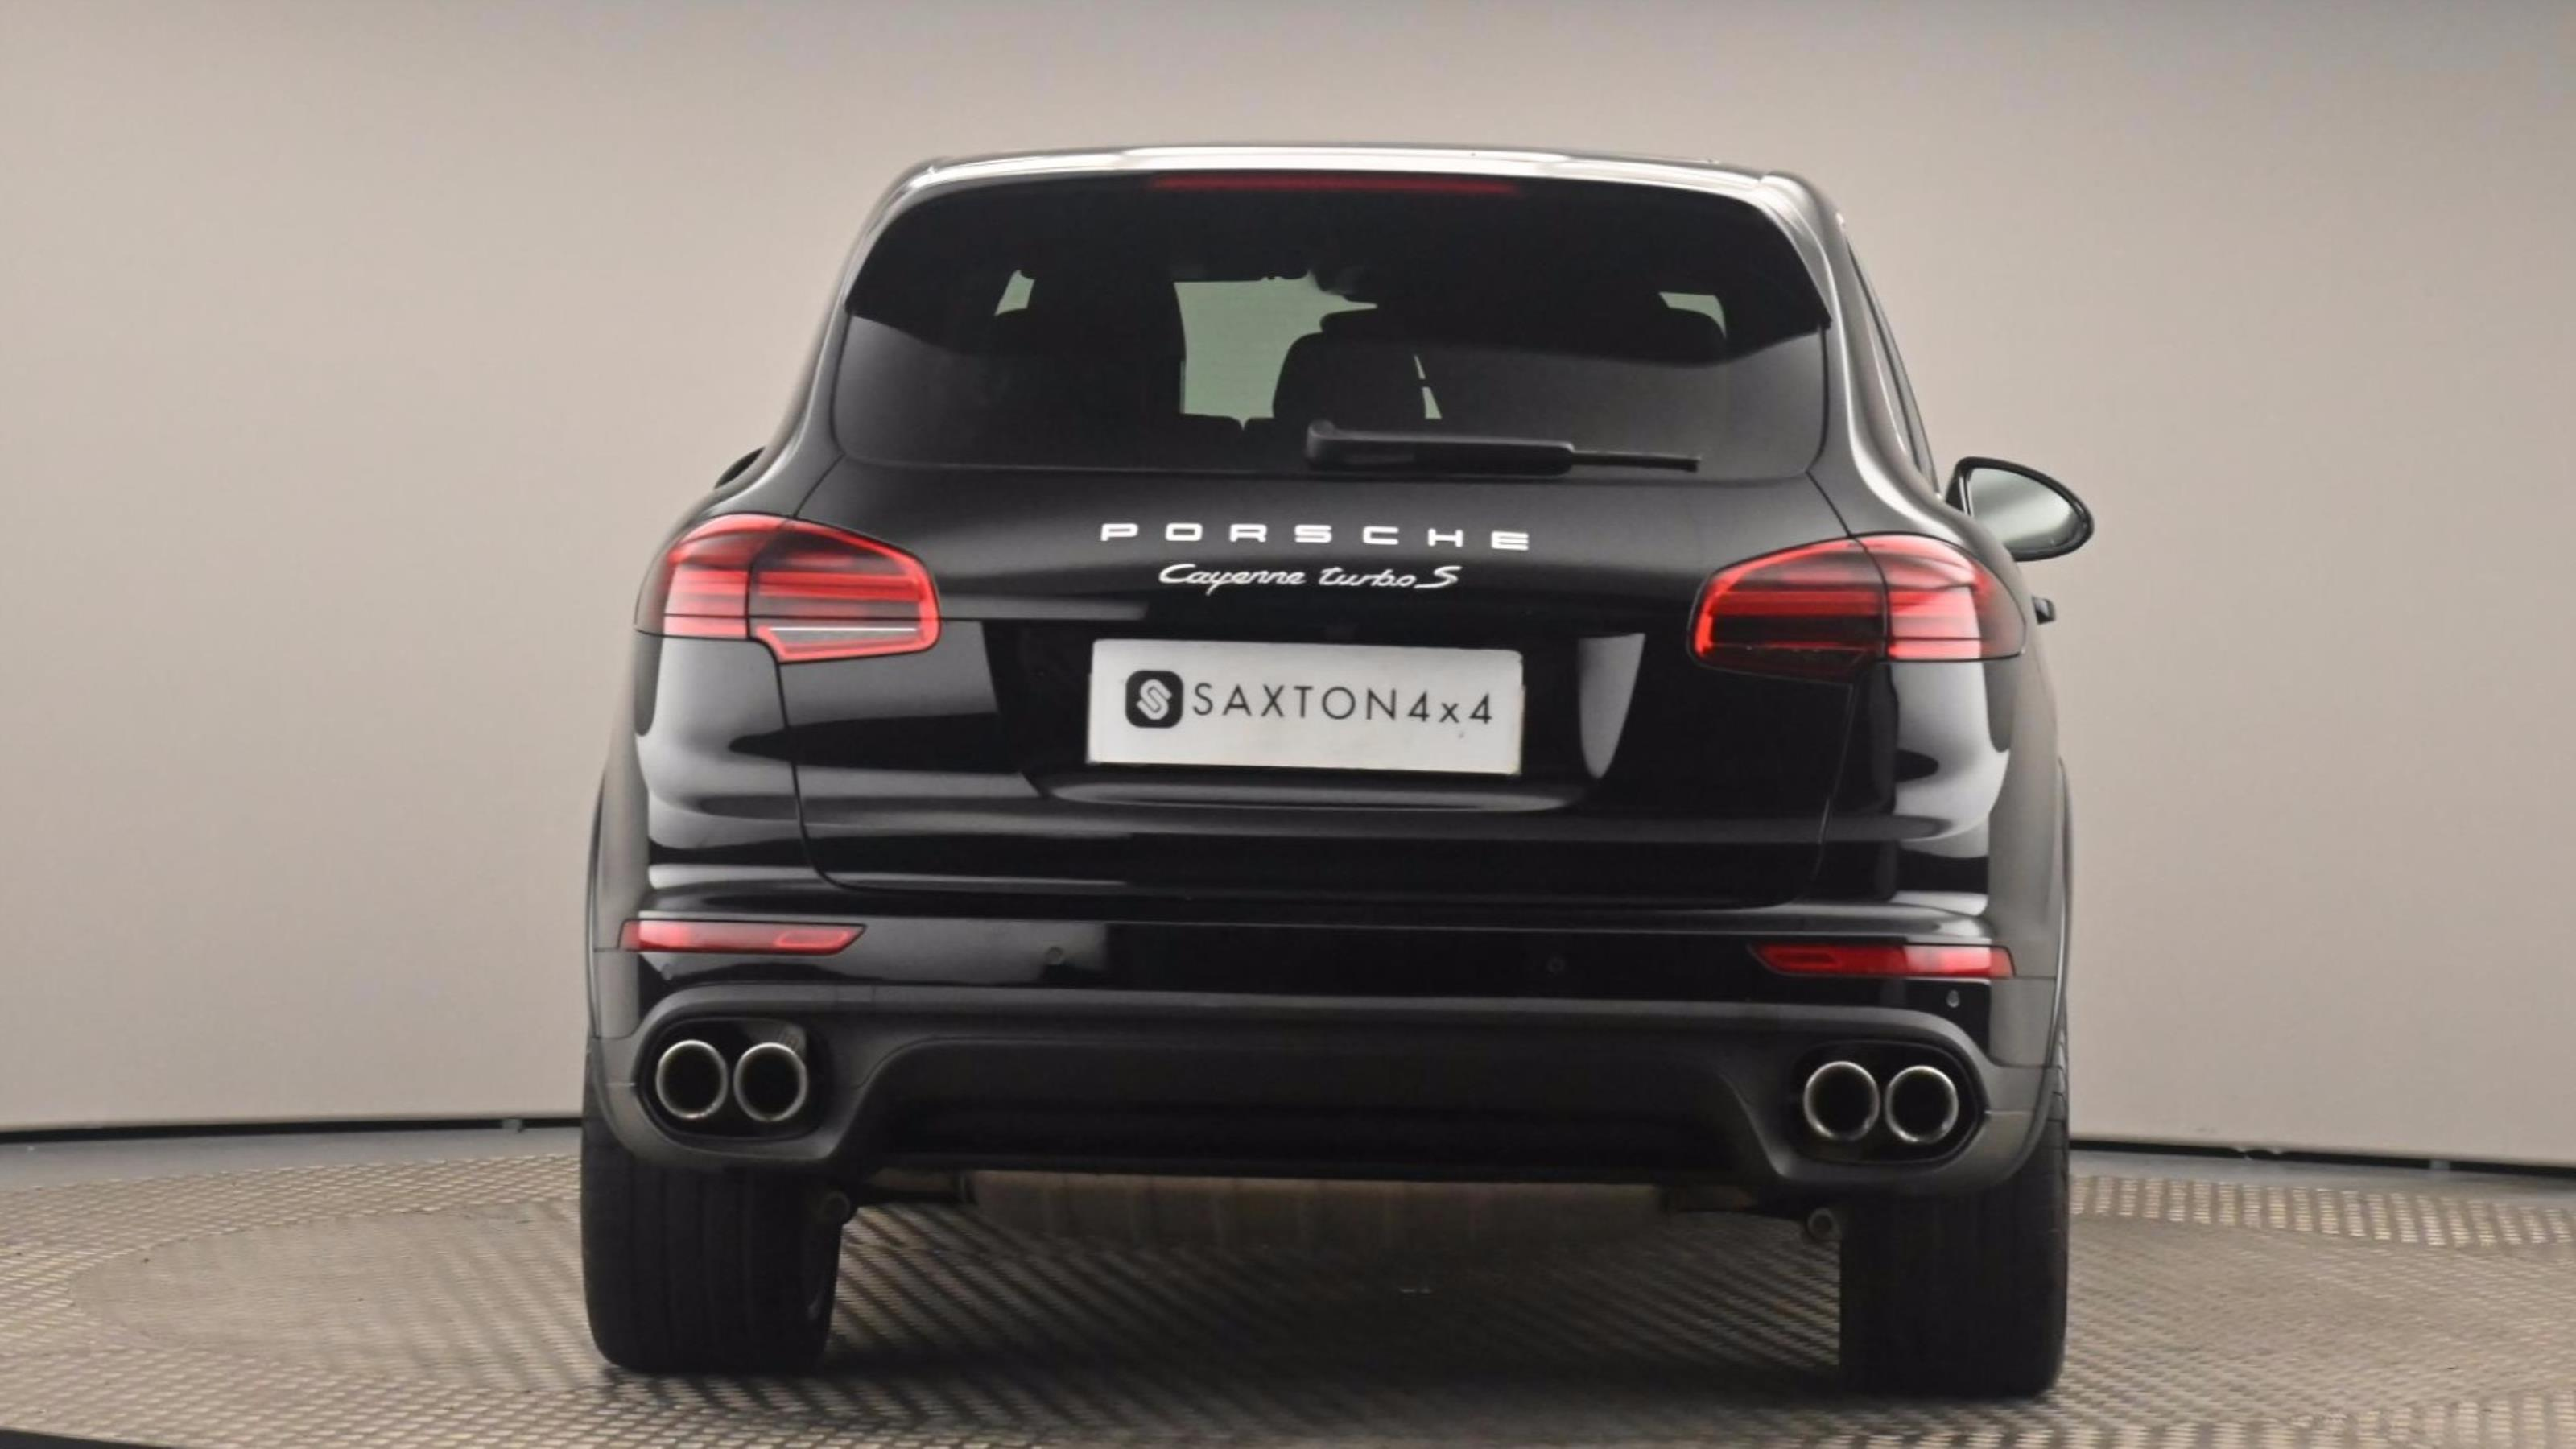 Used 16 Porsche CAYENNE Turbo S 5dr Tiptronic S BLACK at Saxton4x4